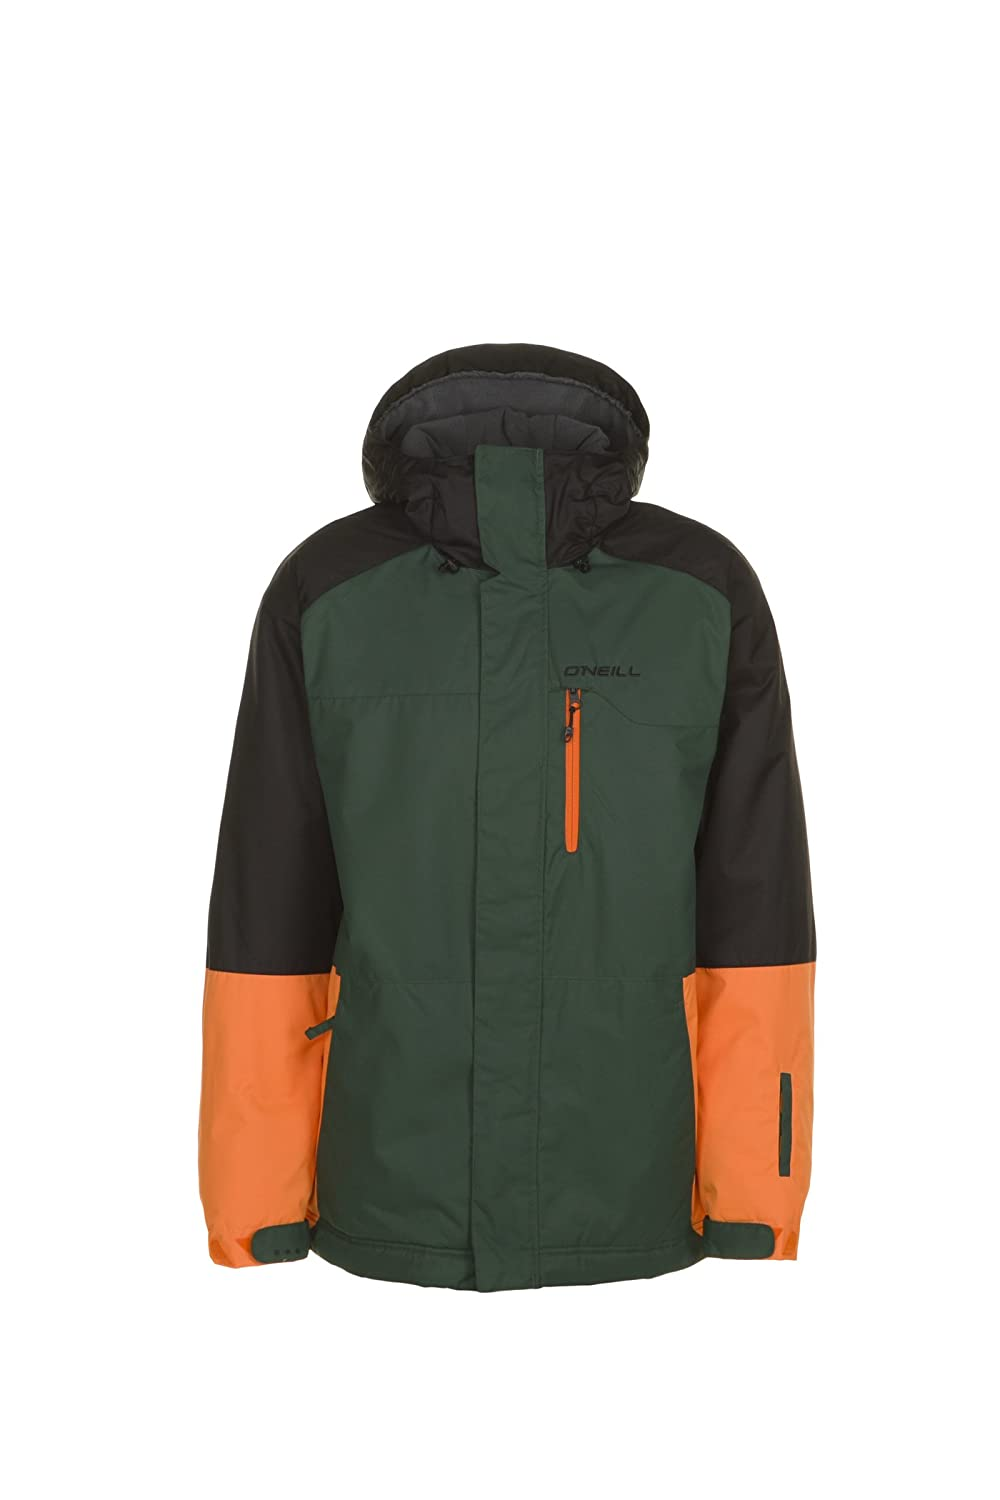 O'Neill Herren Snowboardjacke PMEX District